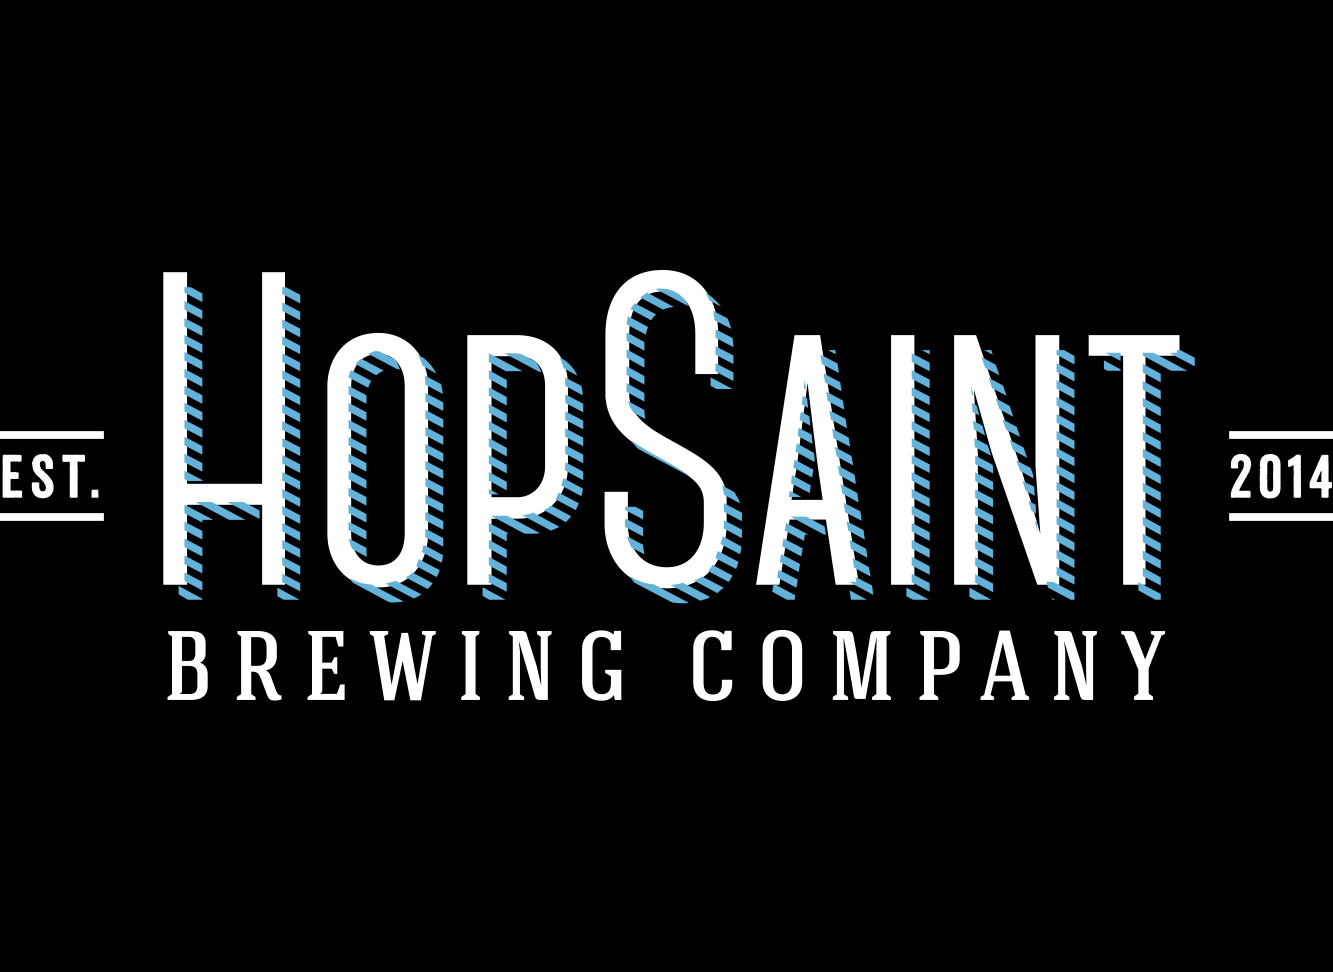 Hop Saint Brewing Company